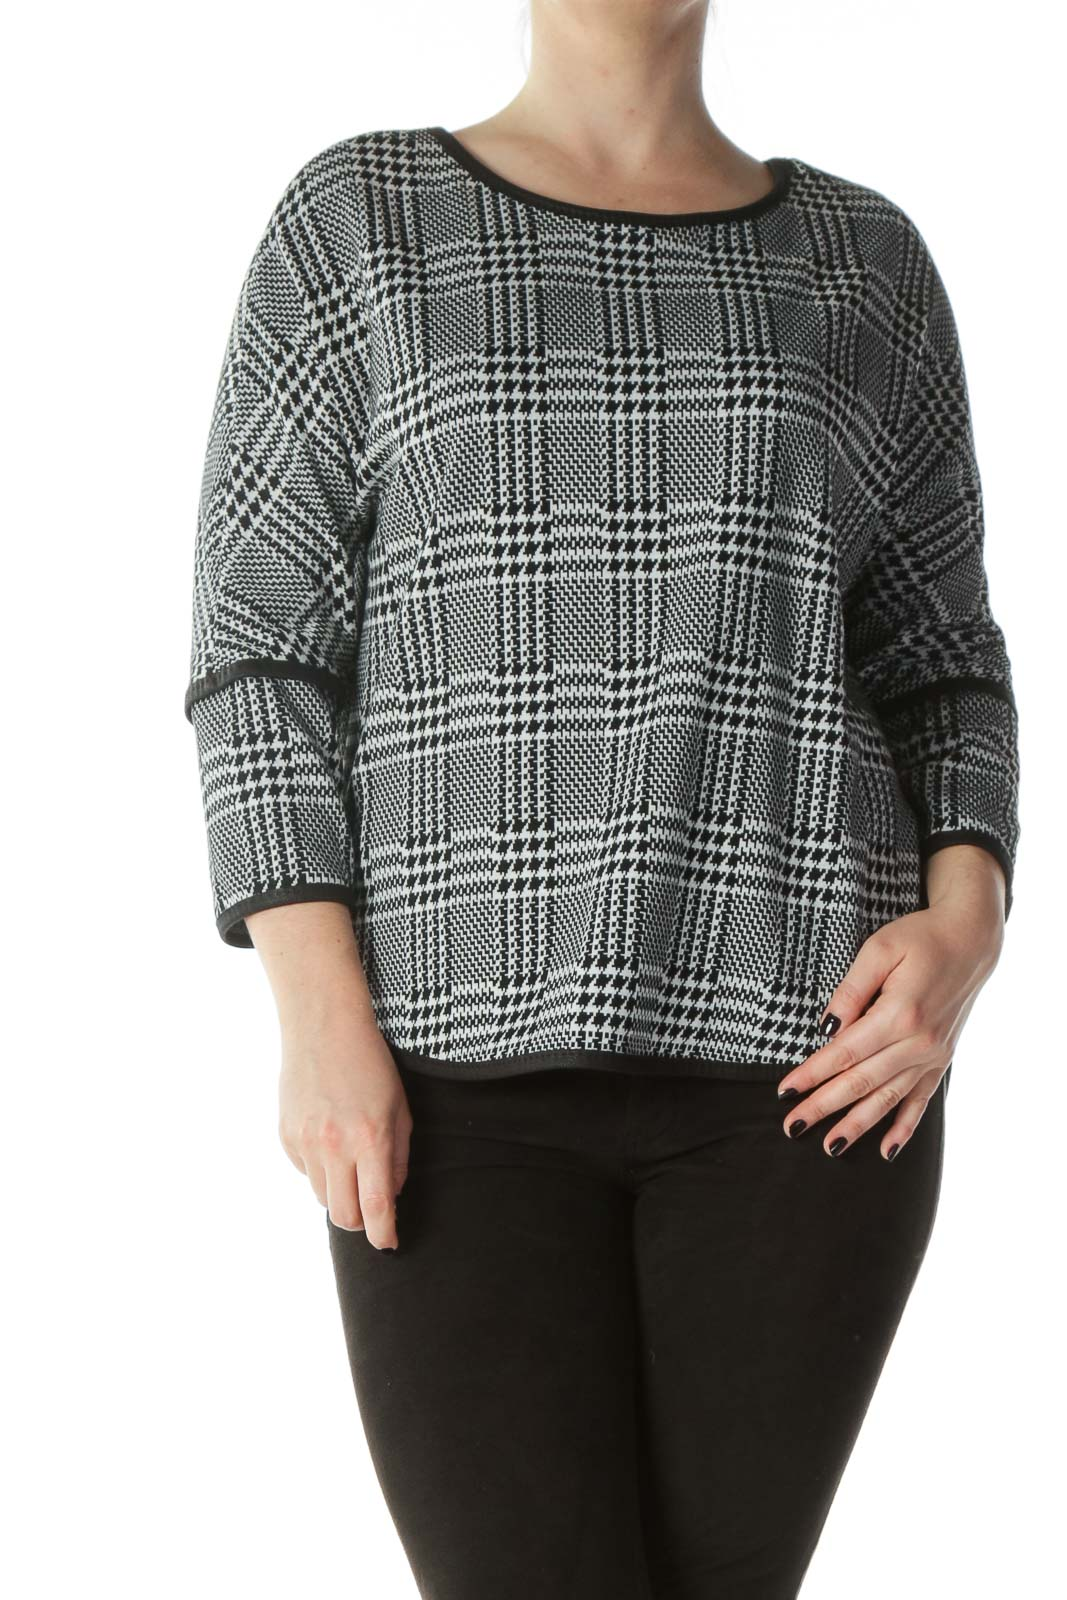 Black White Houndstooth Patterned Knit Top